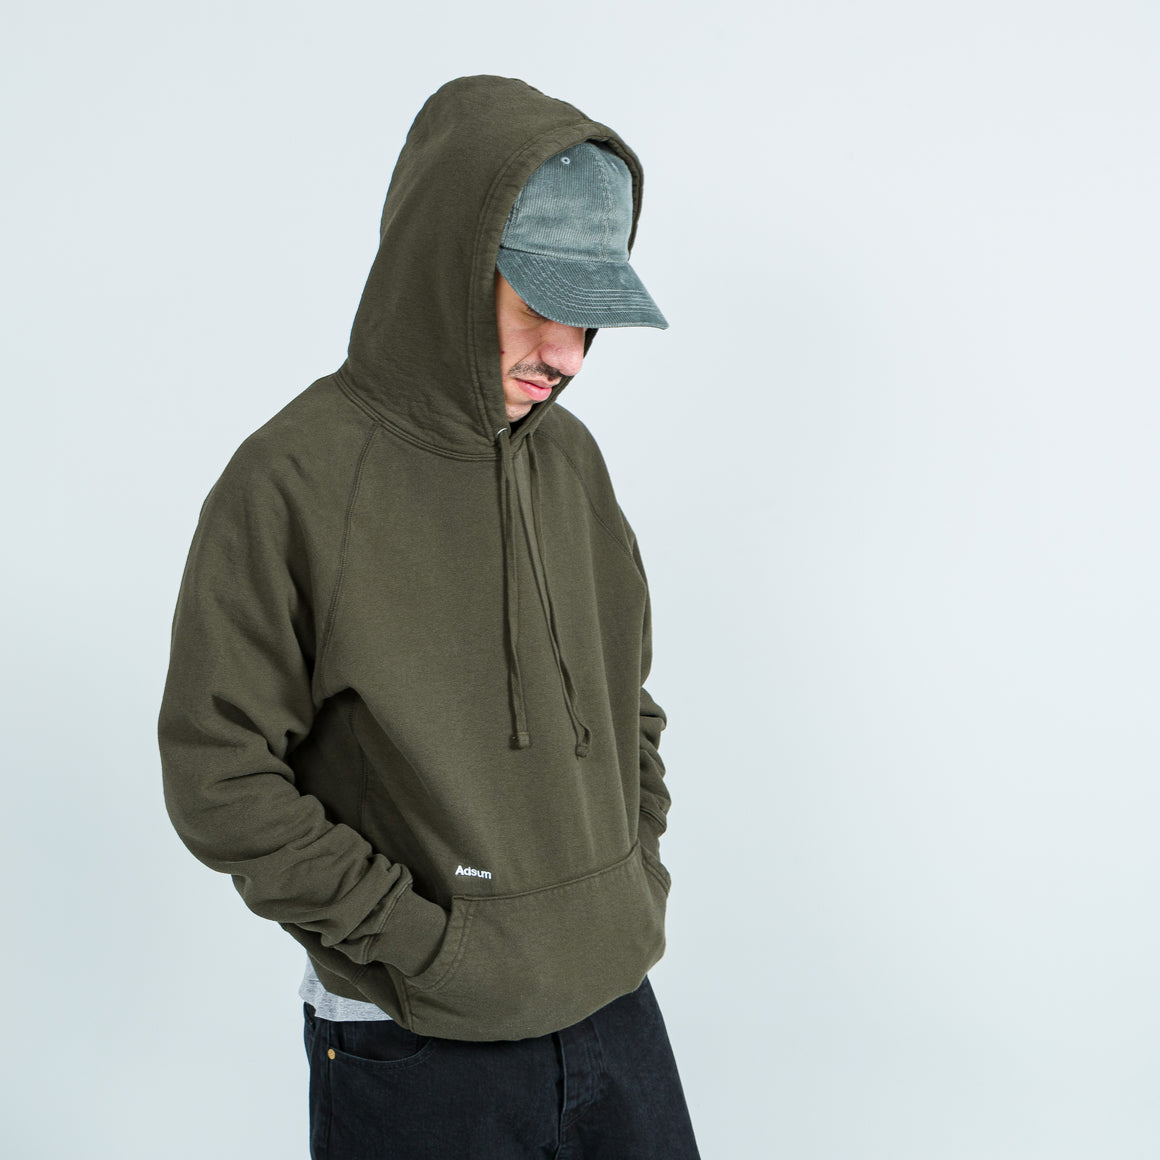 Adsum - Core Logo Hoodie - Dark Green - Up There